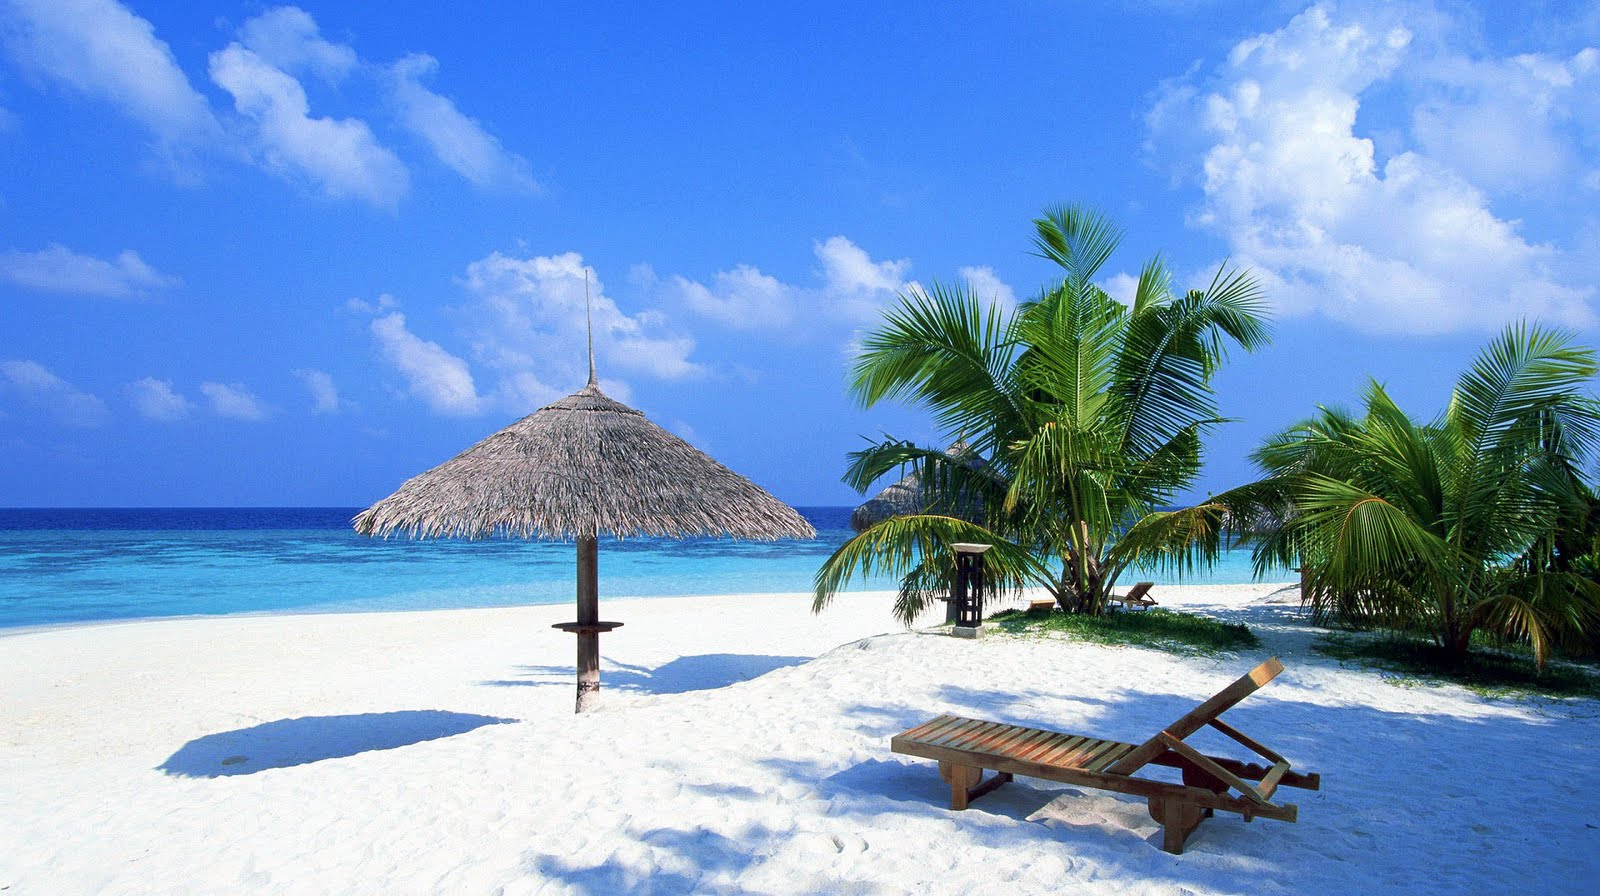 Hot winter travel spots 3 destinations jamaica for Warm vacation spots in december in usa